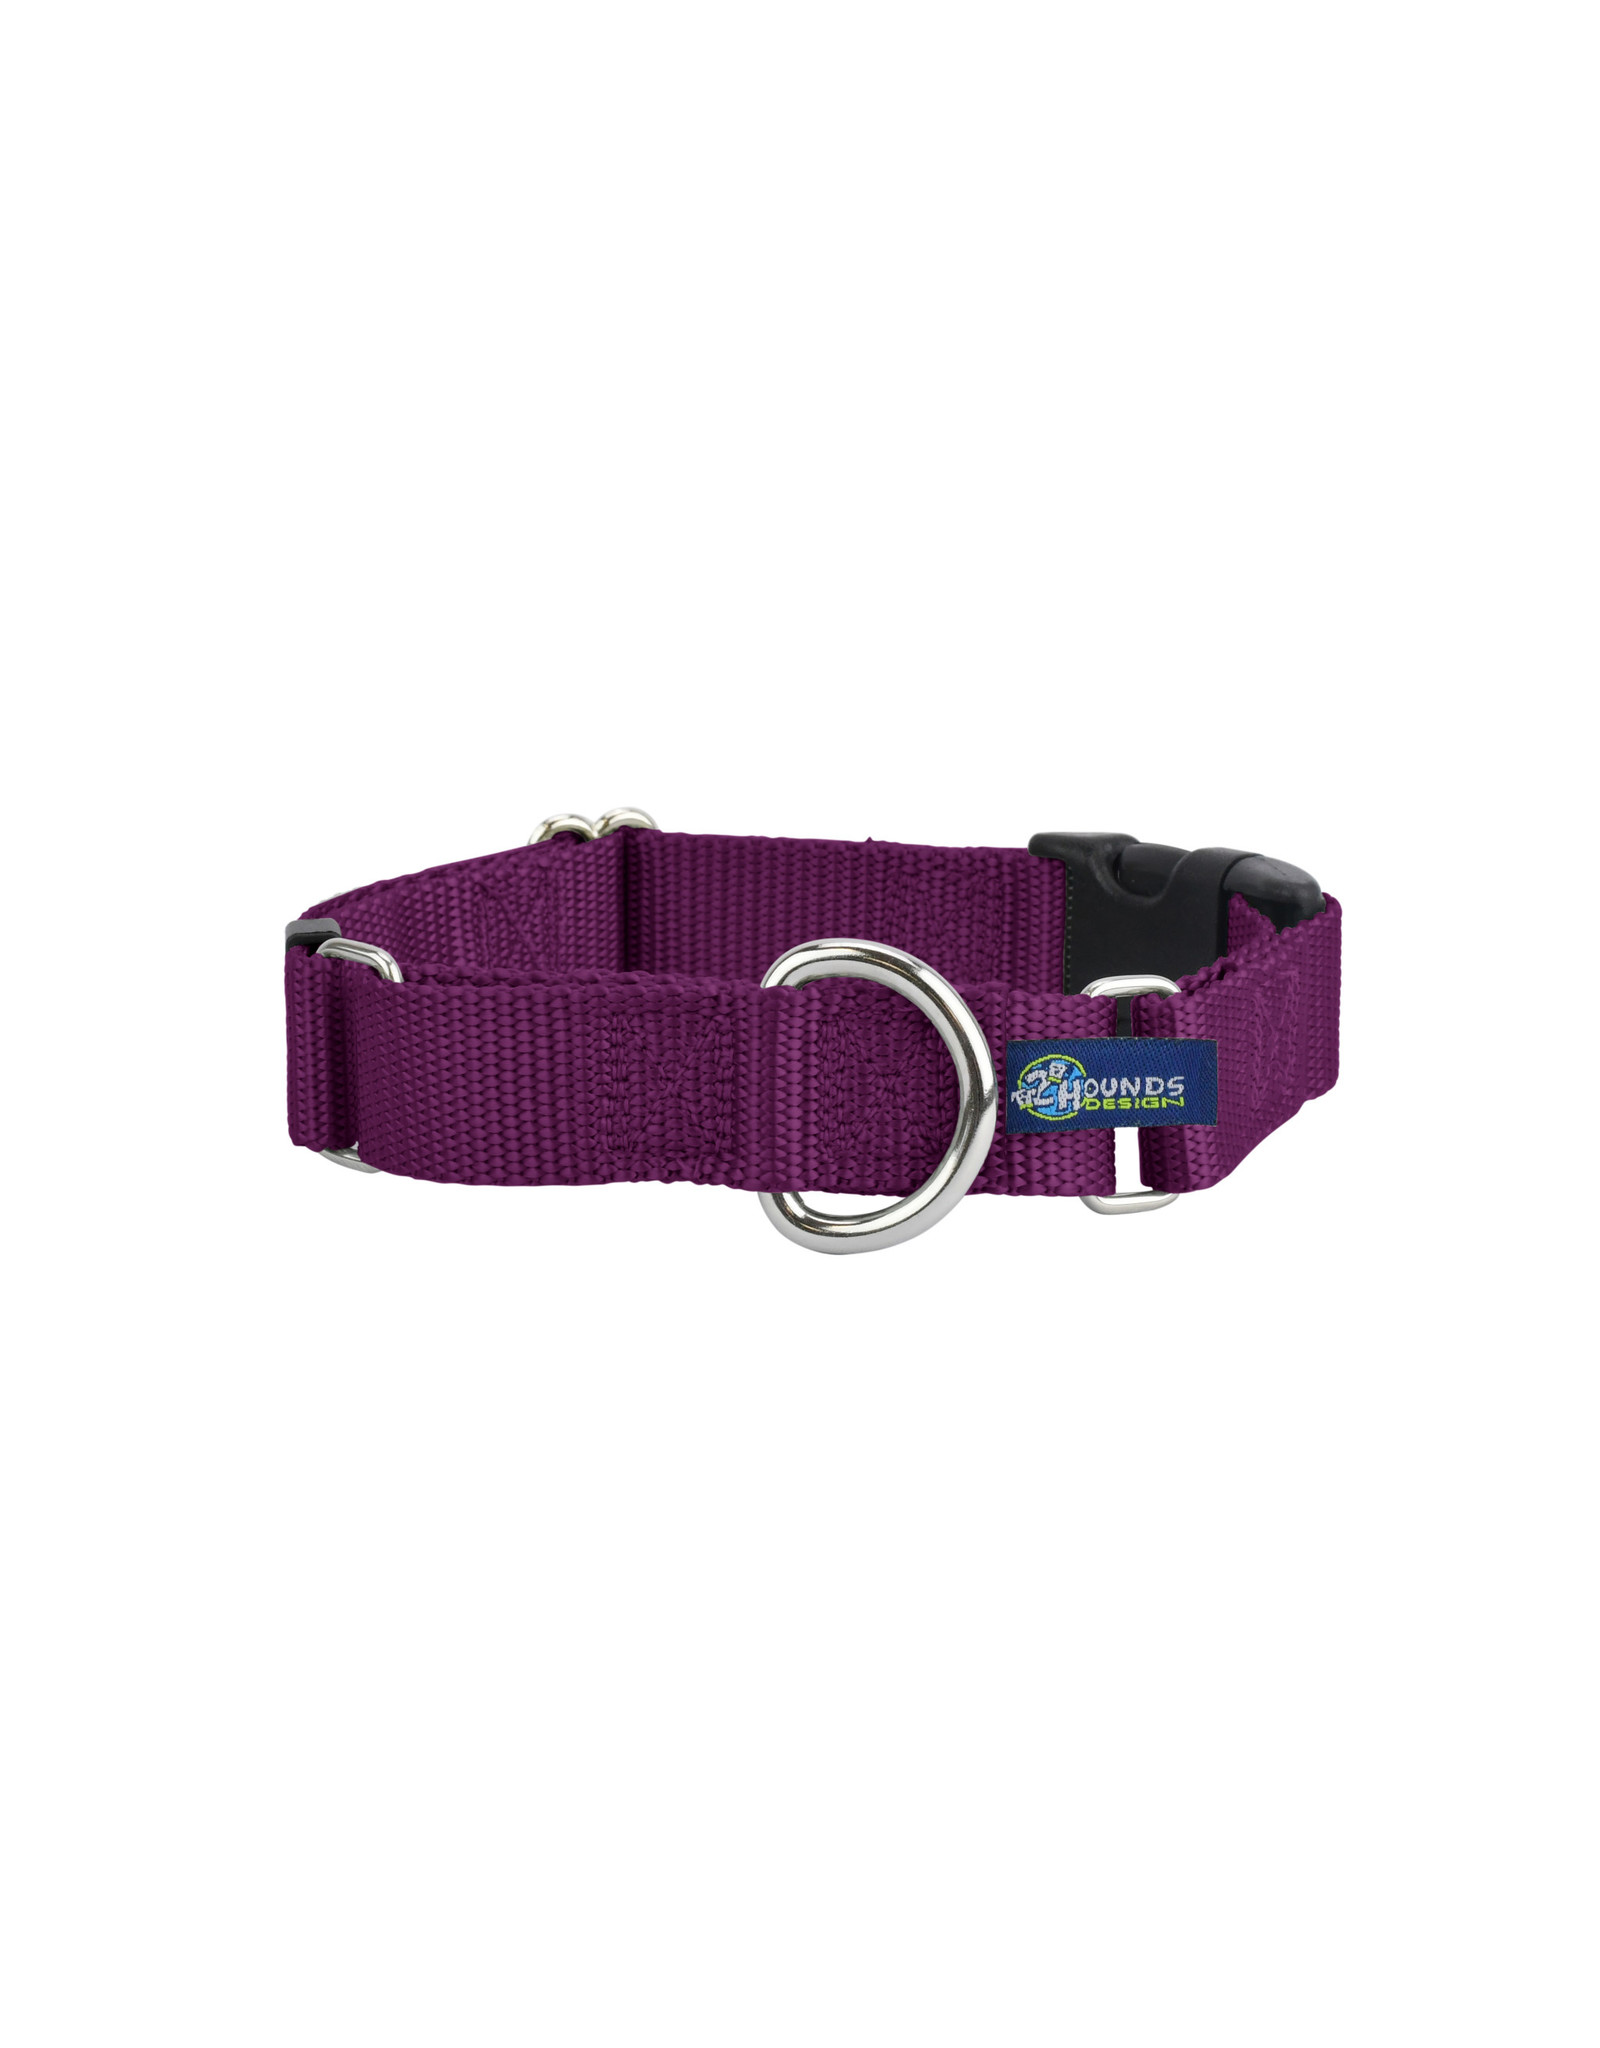 "2 Hounds Design Martingale w/ buckle: Burgundy, 1"" M"